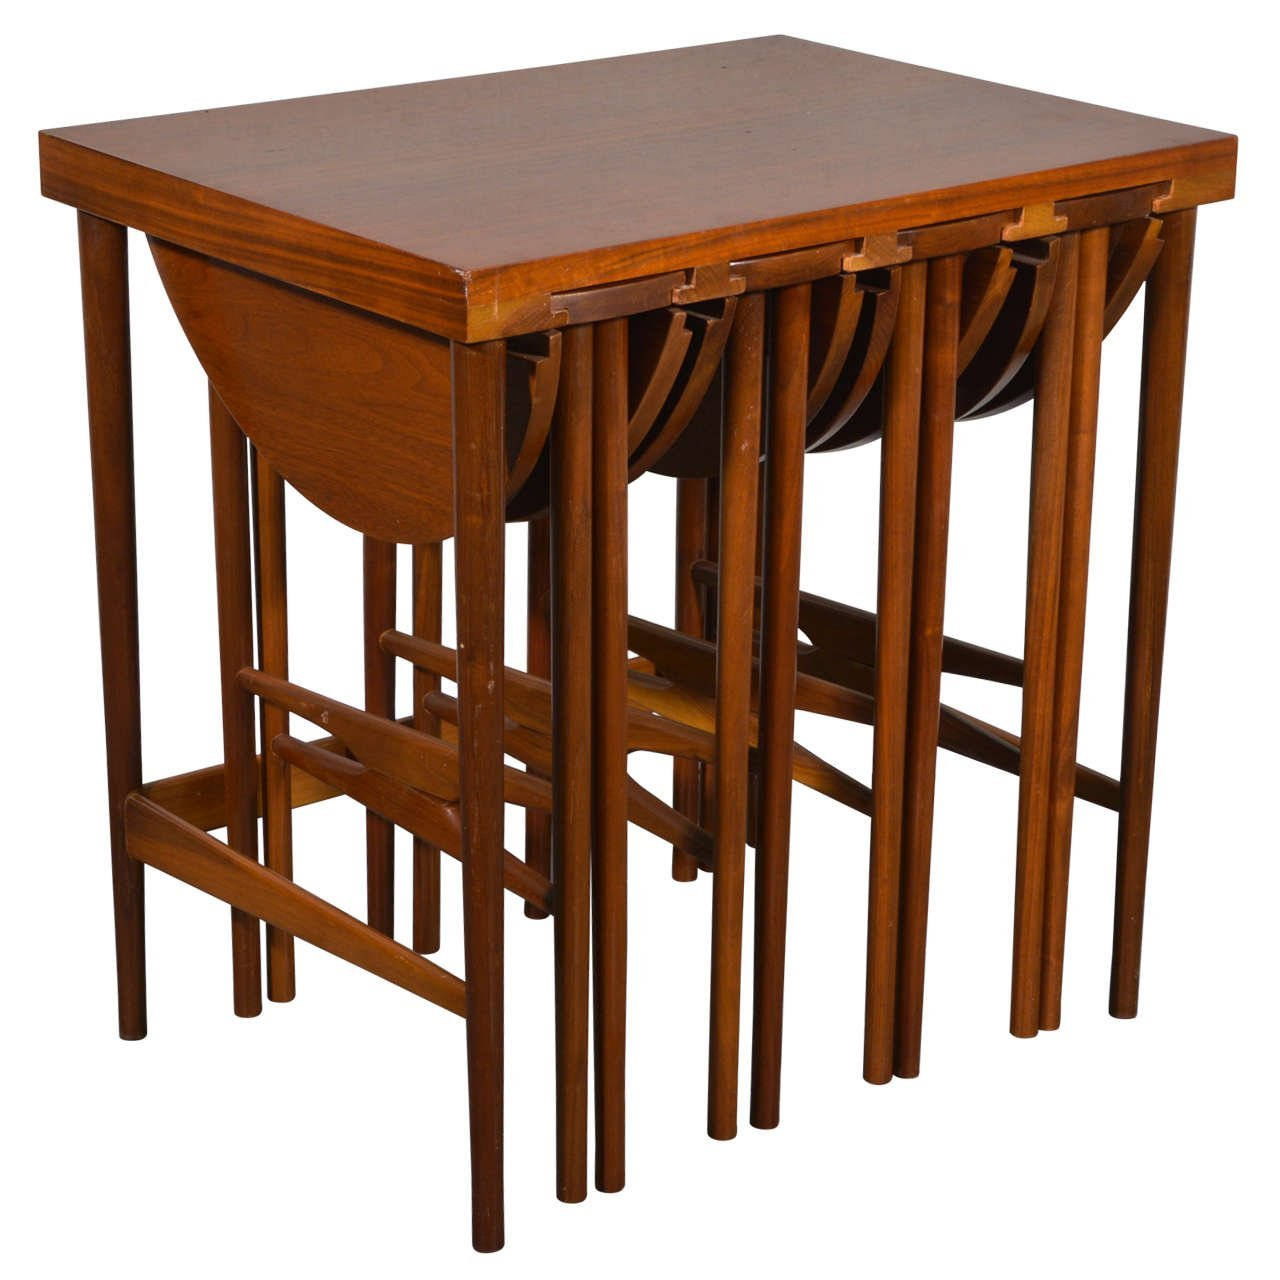 Bertha Schaefer for Singer & Sons Side Table with Set of Four Occasional Tables, 1950s - The Exchange Int